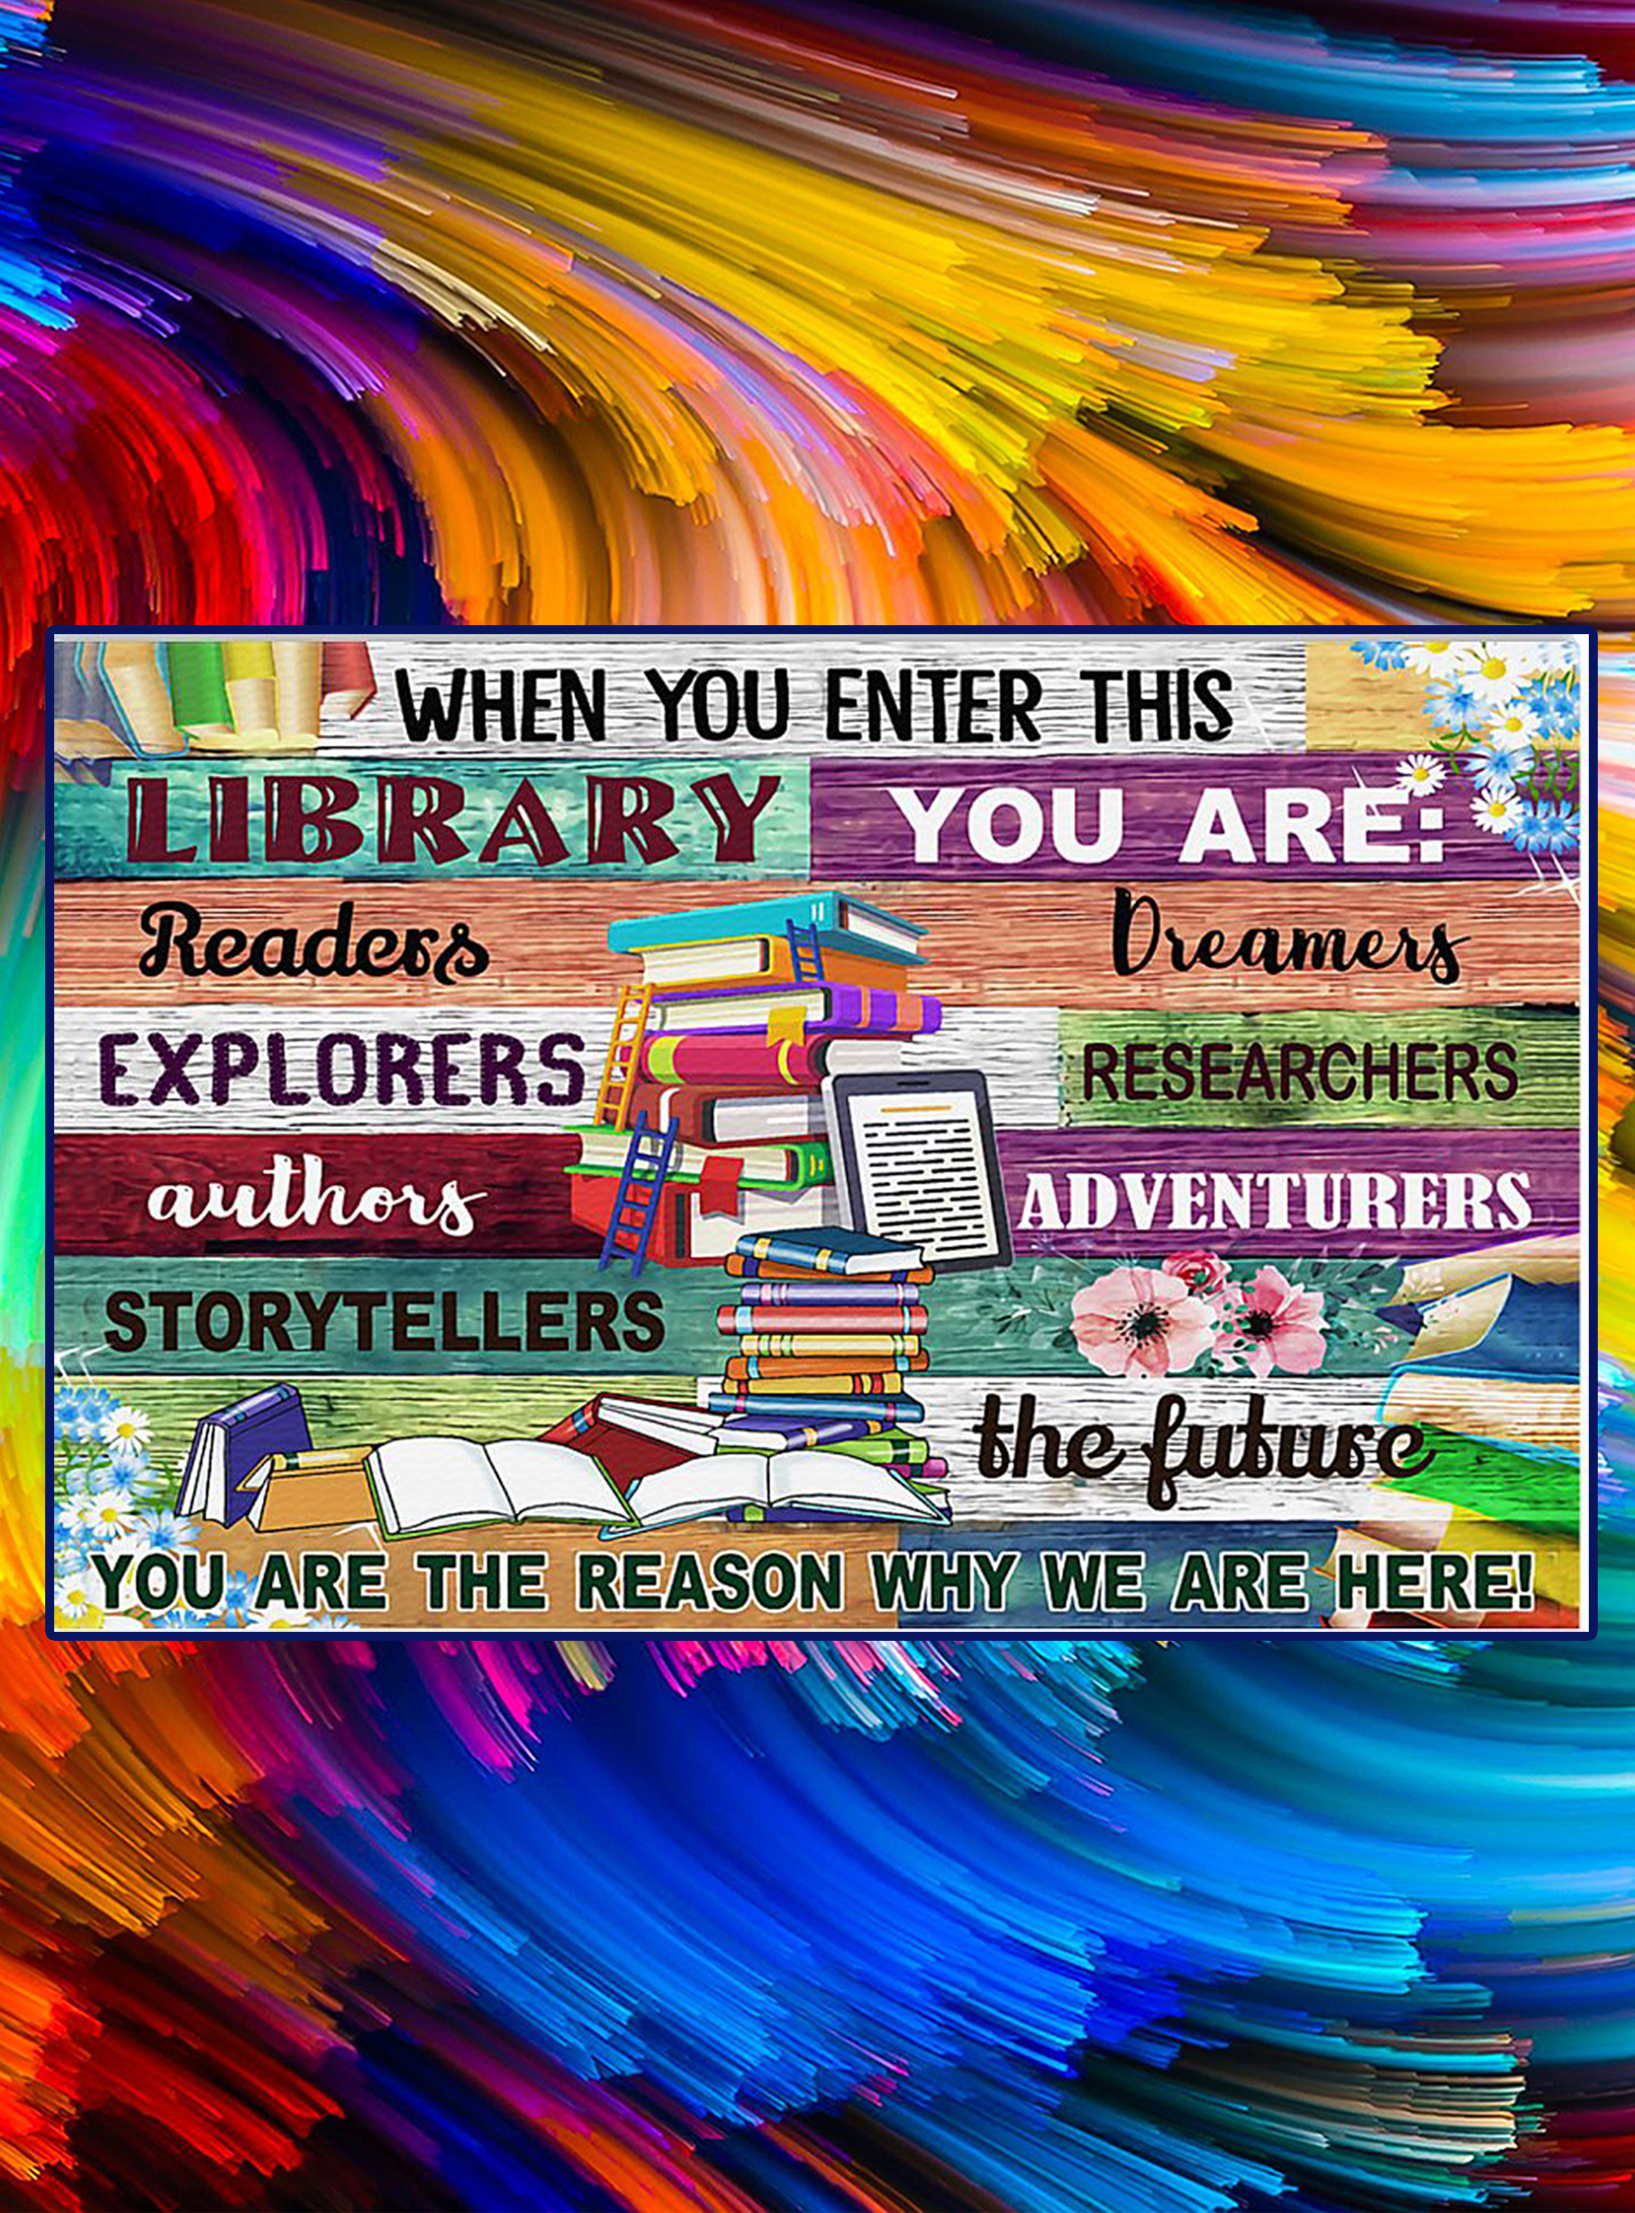 Librarian When you enter this library you are the reason why we are here poster - A2